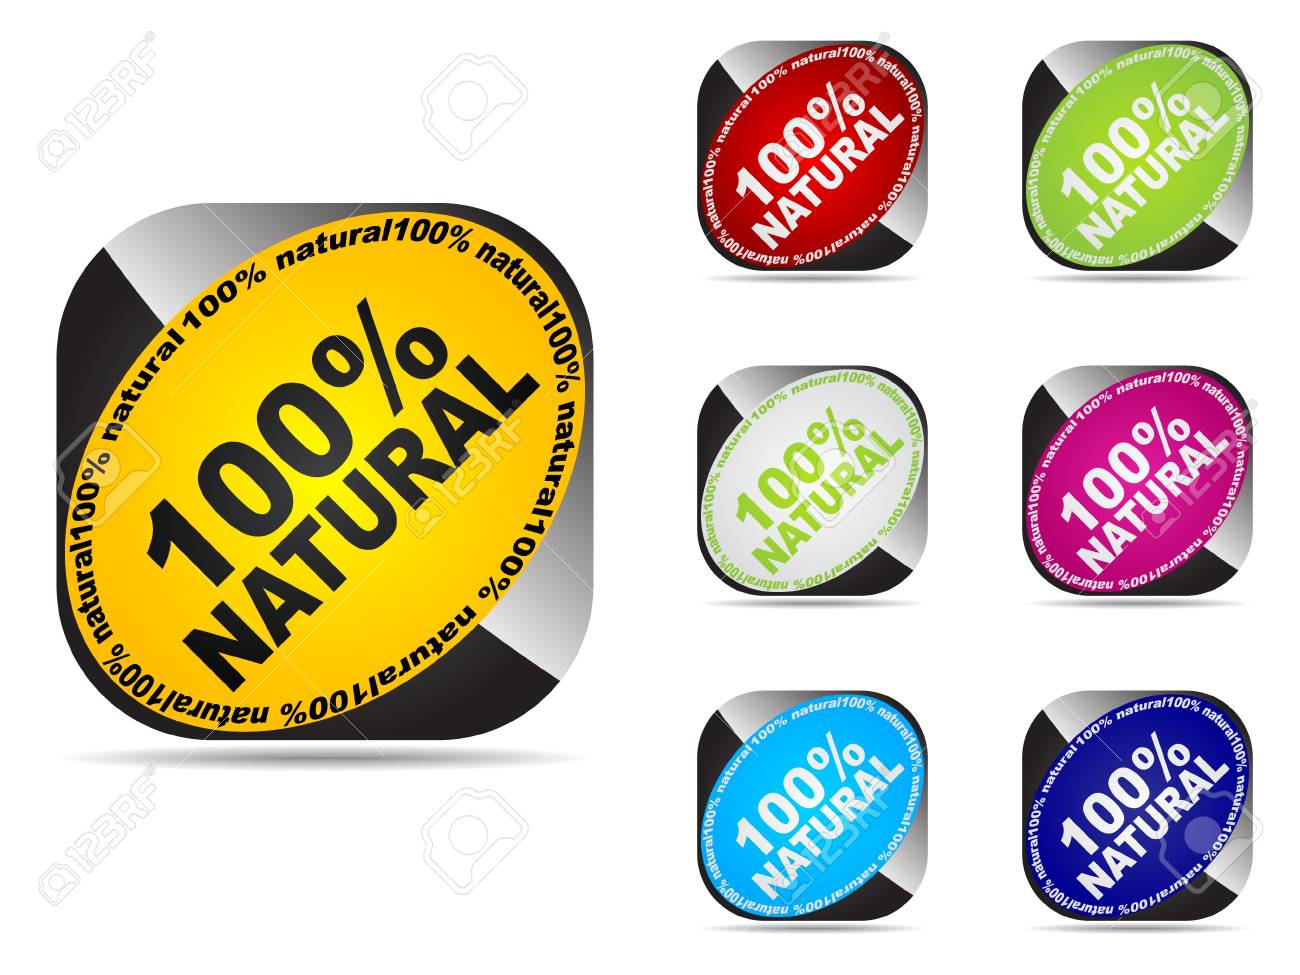 100% natural web buttons different colors Stock Vector - 10568240